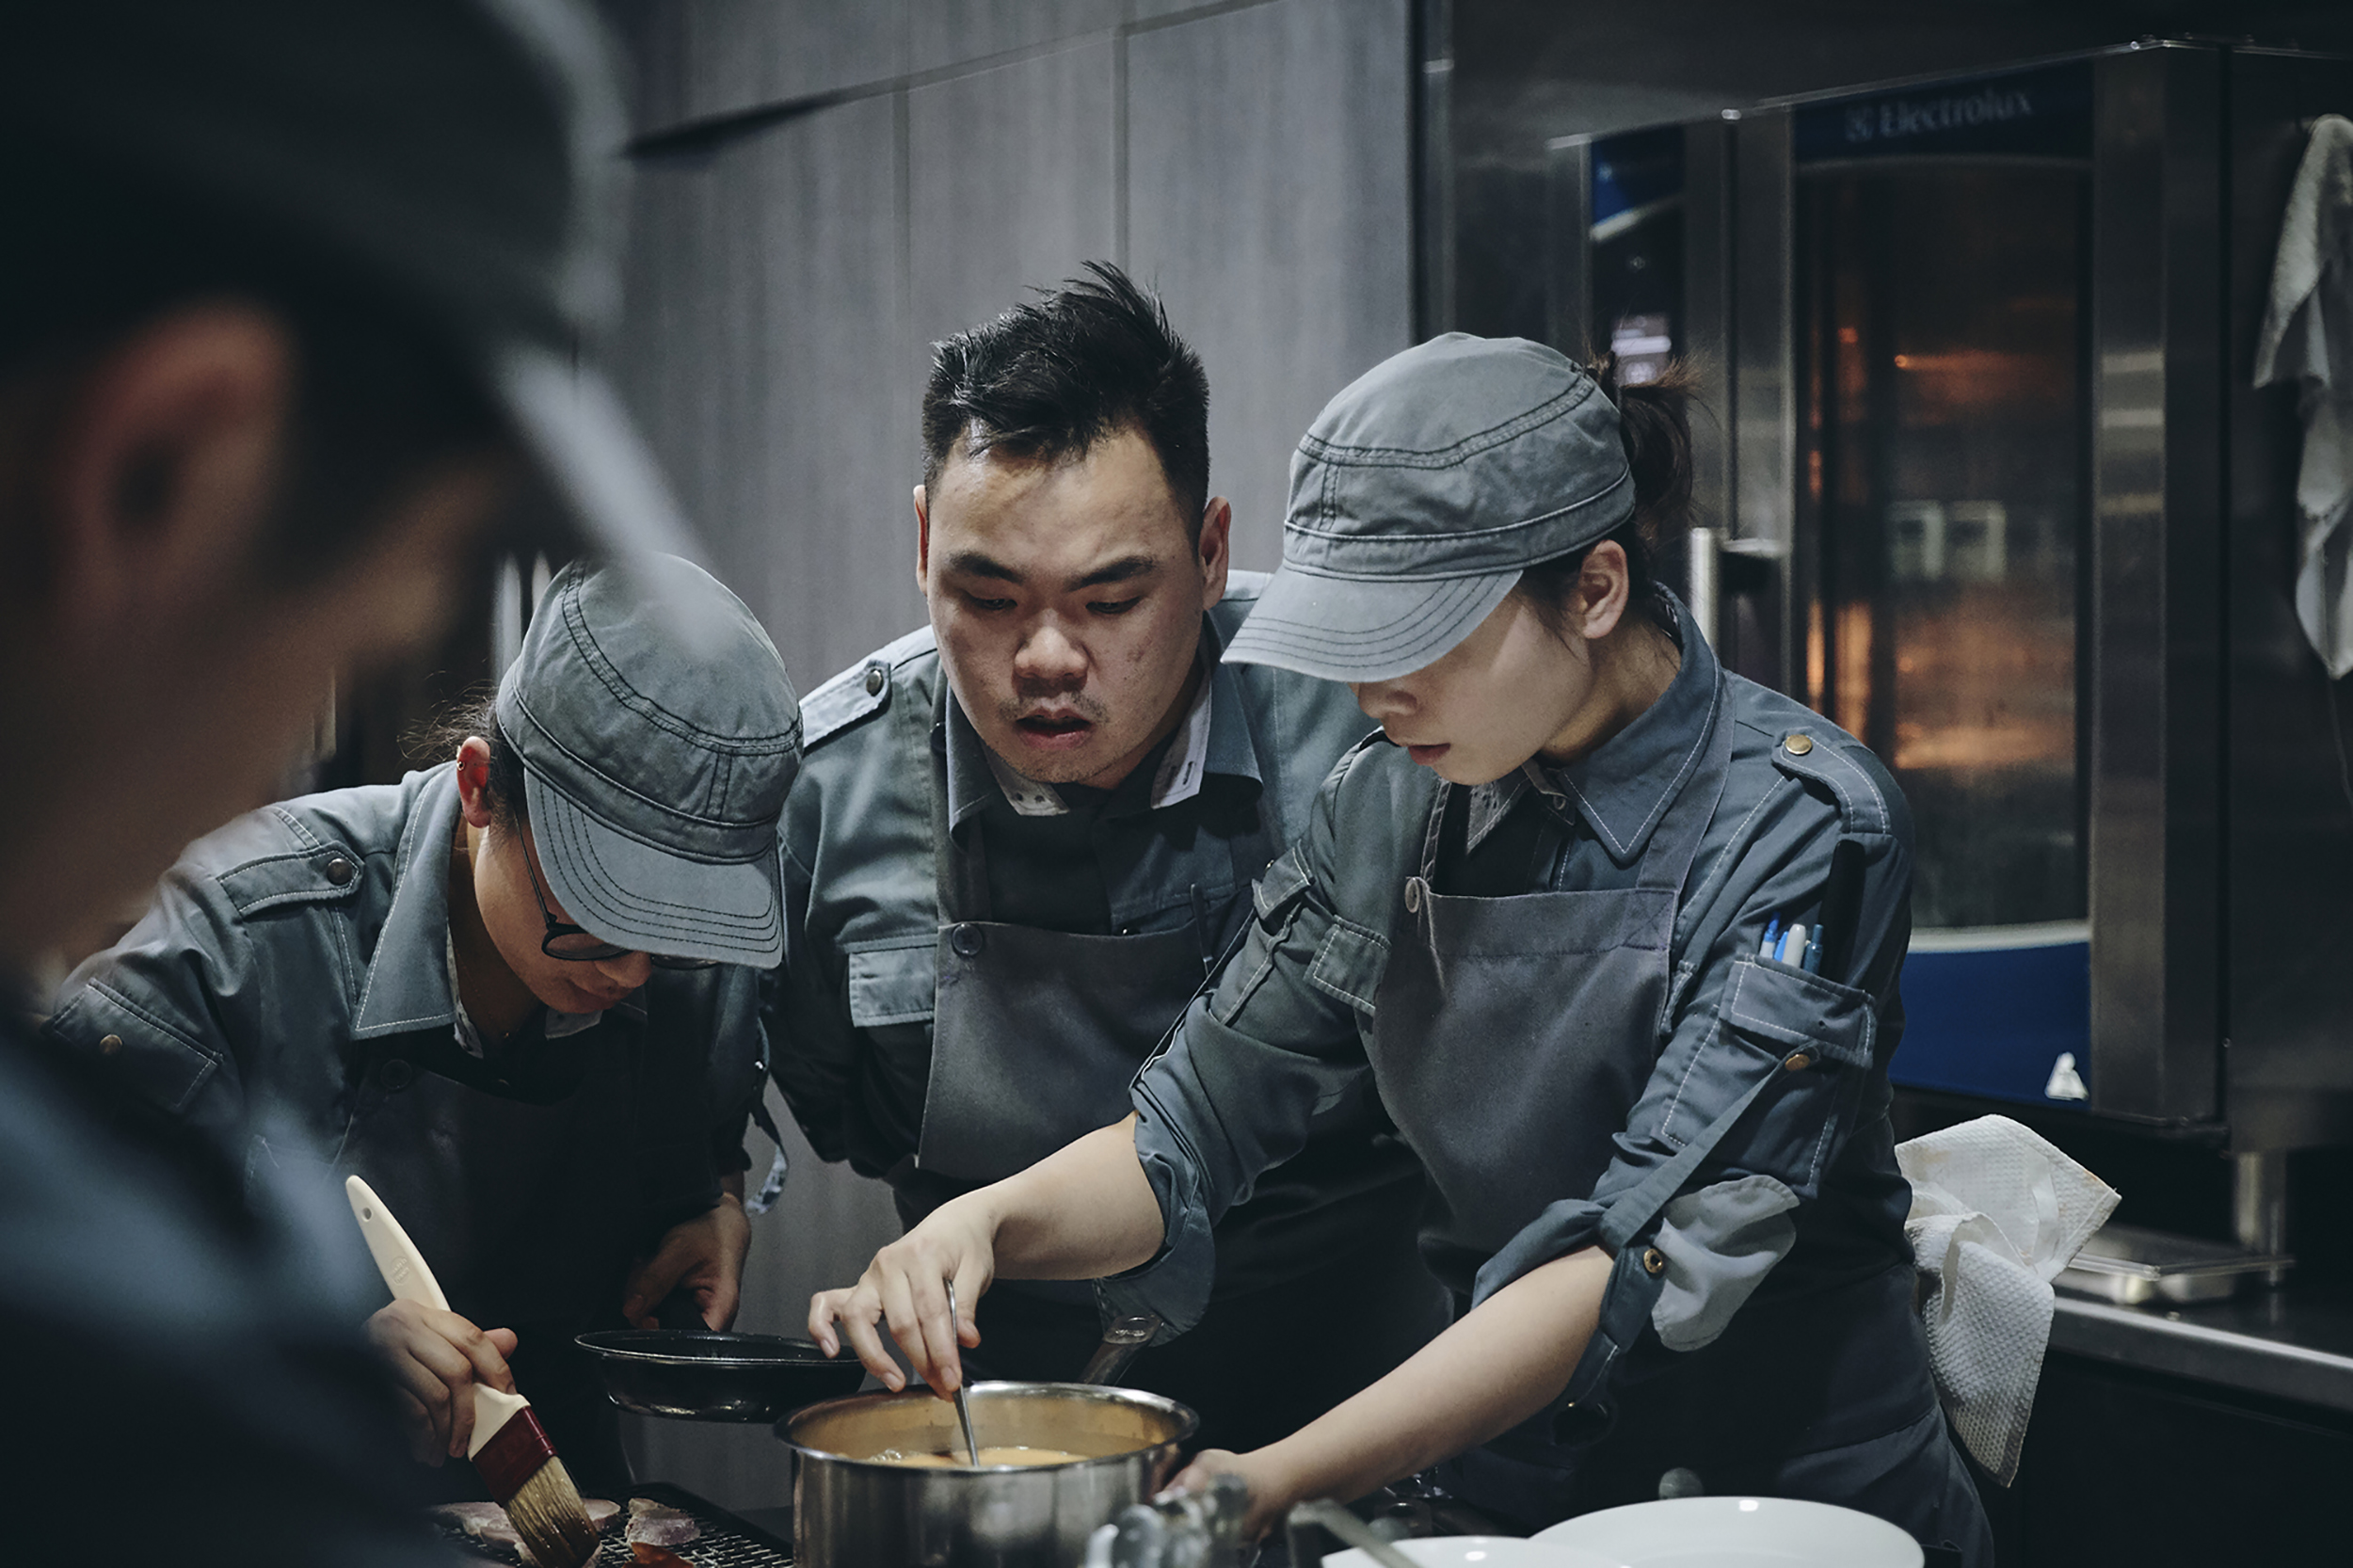 shanghai-chefs-thom-rigney-professional-photographer-china-travel-food-005